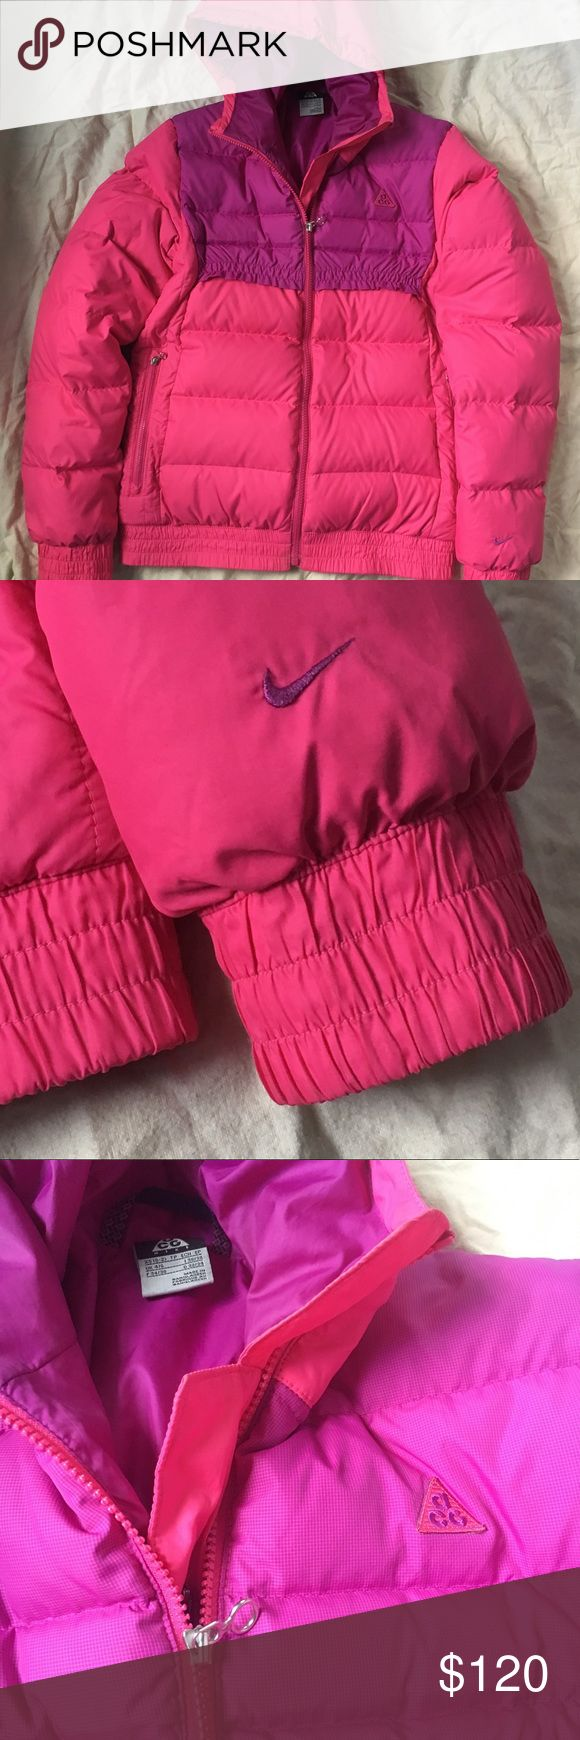 WINTER IS COMING Pink & Purple ACG by Nike Coat XS The absolute coolest winter coat. Amazing hot pink and purple coat. Vintage style. Some minor staining. Minor rip as seen in pictures. Make offers or bundle! Nike ACG Jackets & Coats Puffers